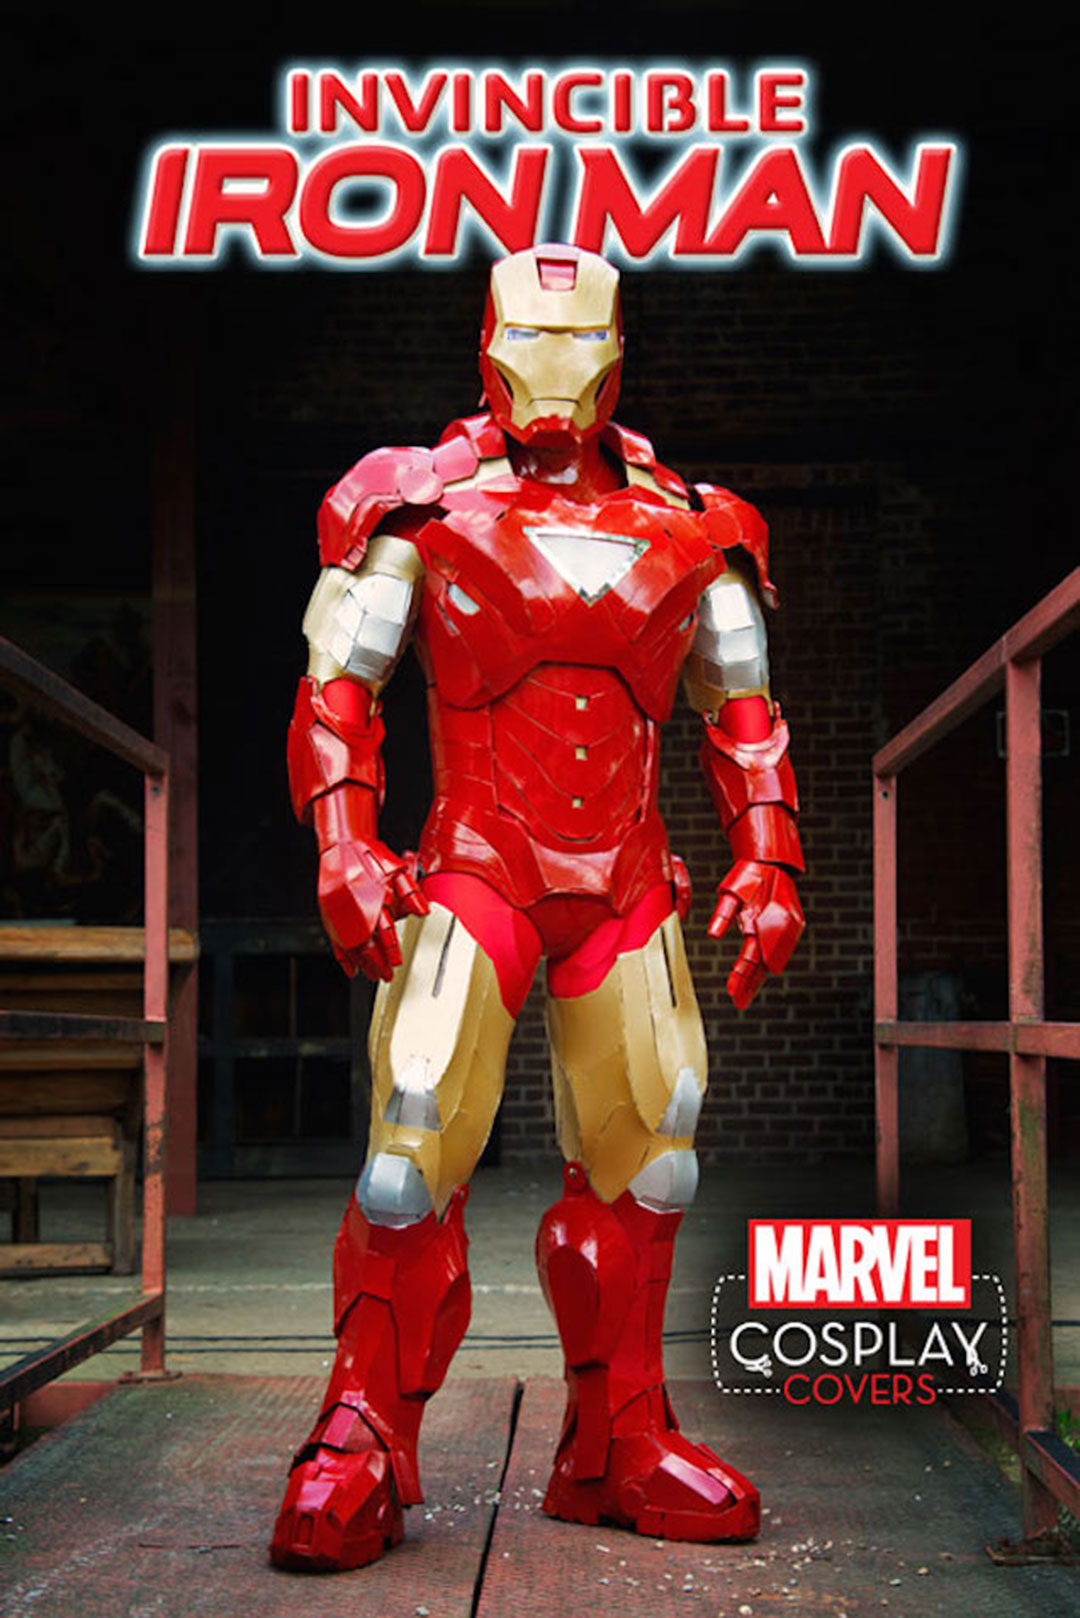 Couverture-Marvel-cosplay (5)